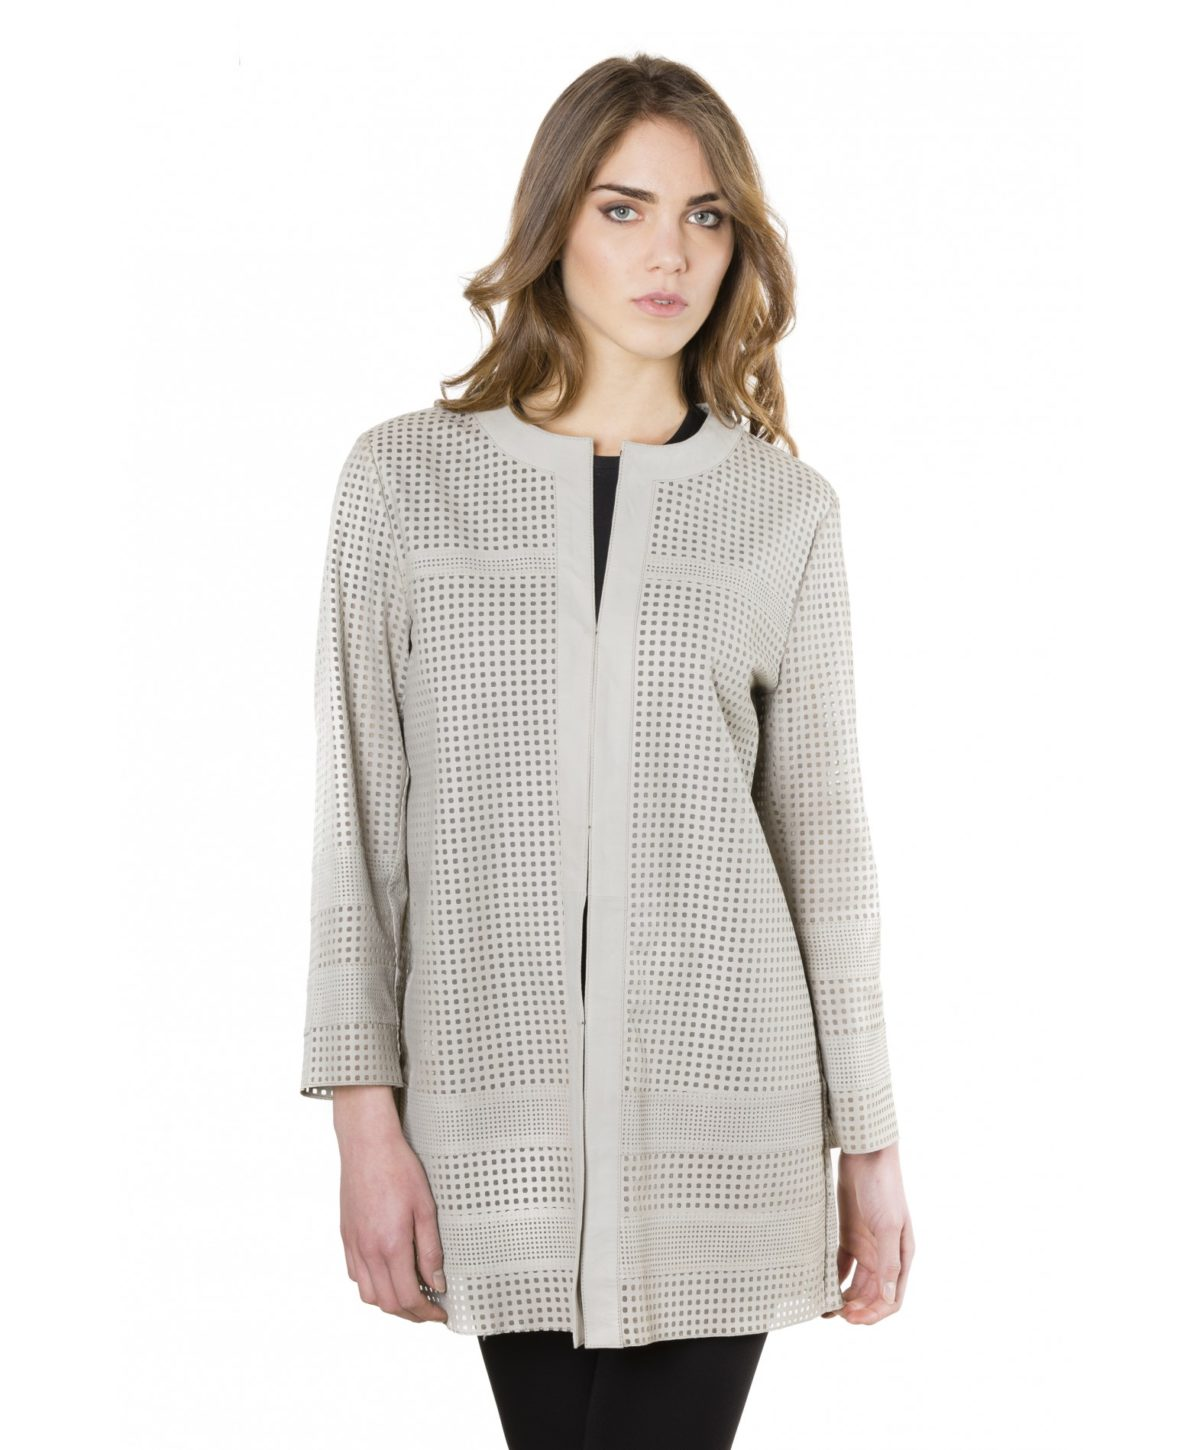 madox-grey-color-lamb-lasered-leather-jacket